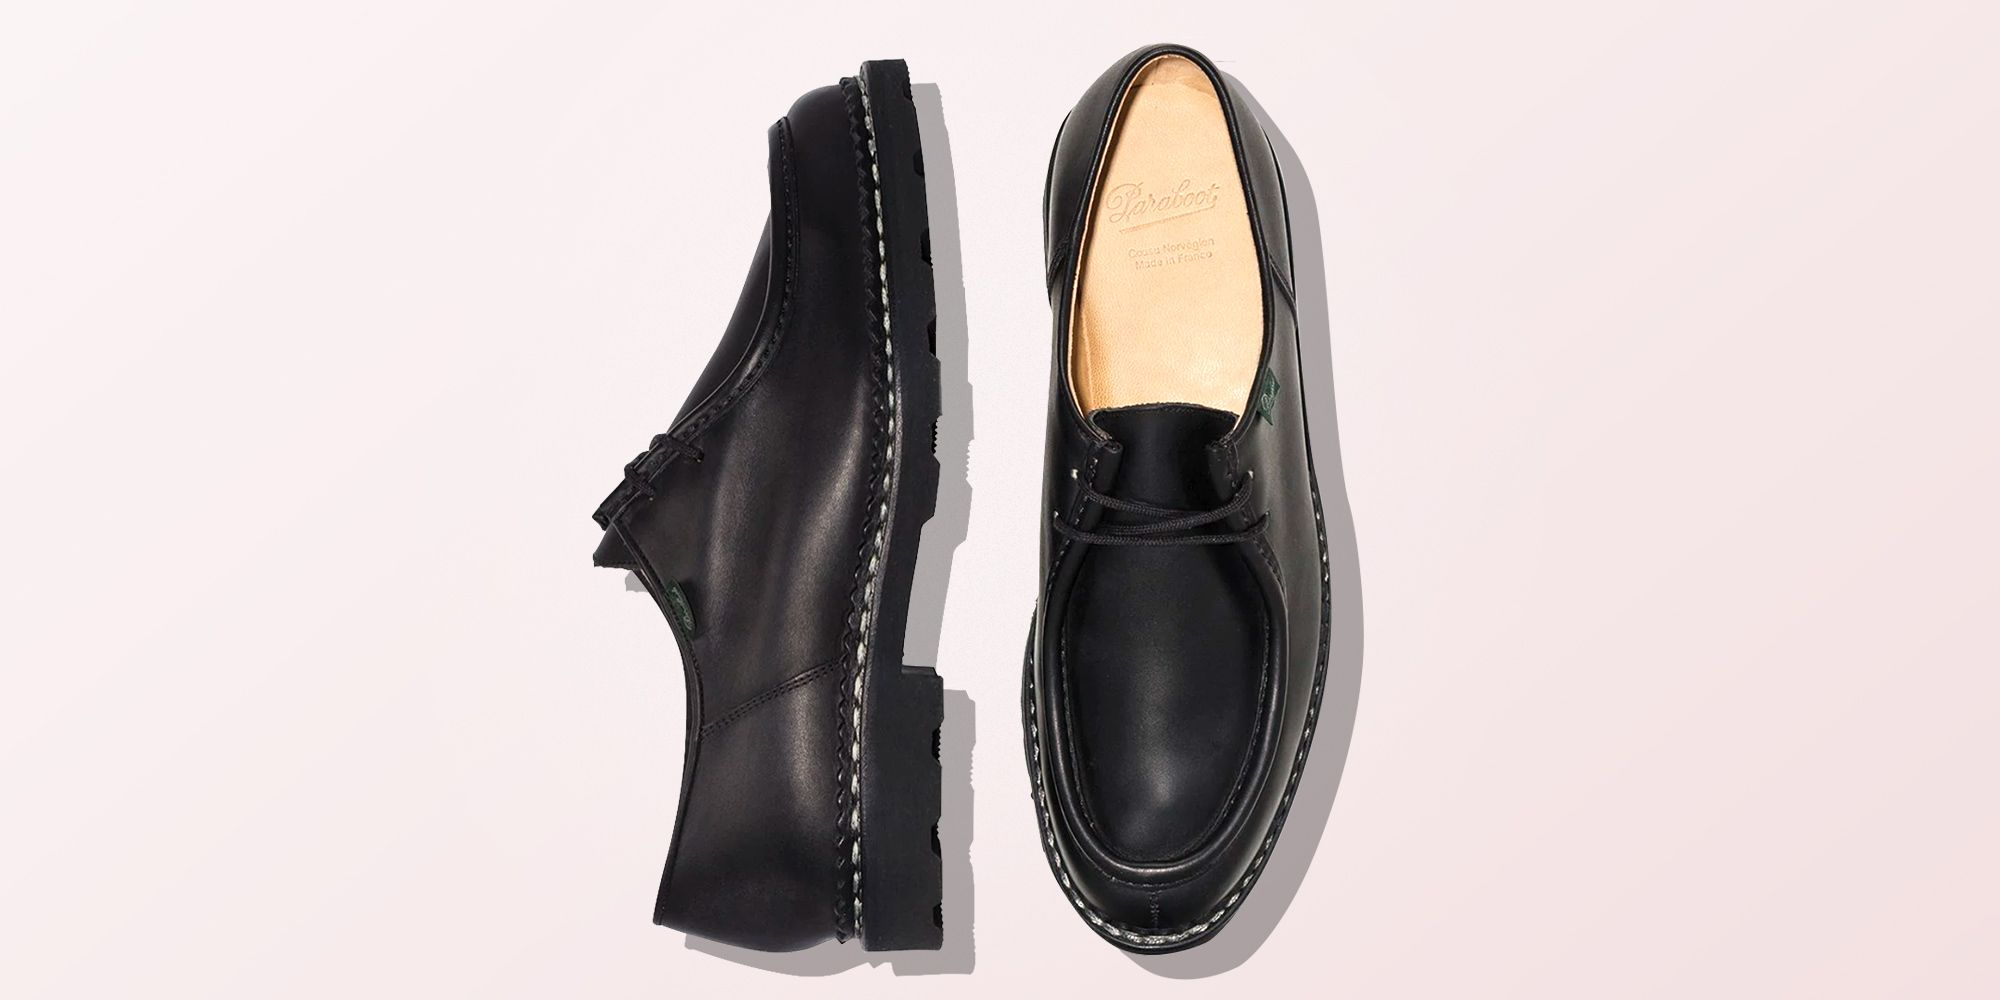 12 Best Fall Shoes For Men 2020 - Top